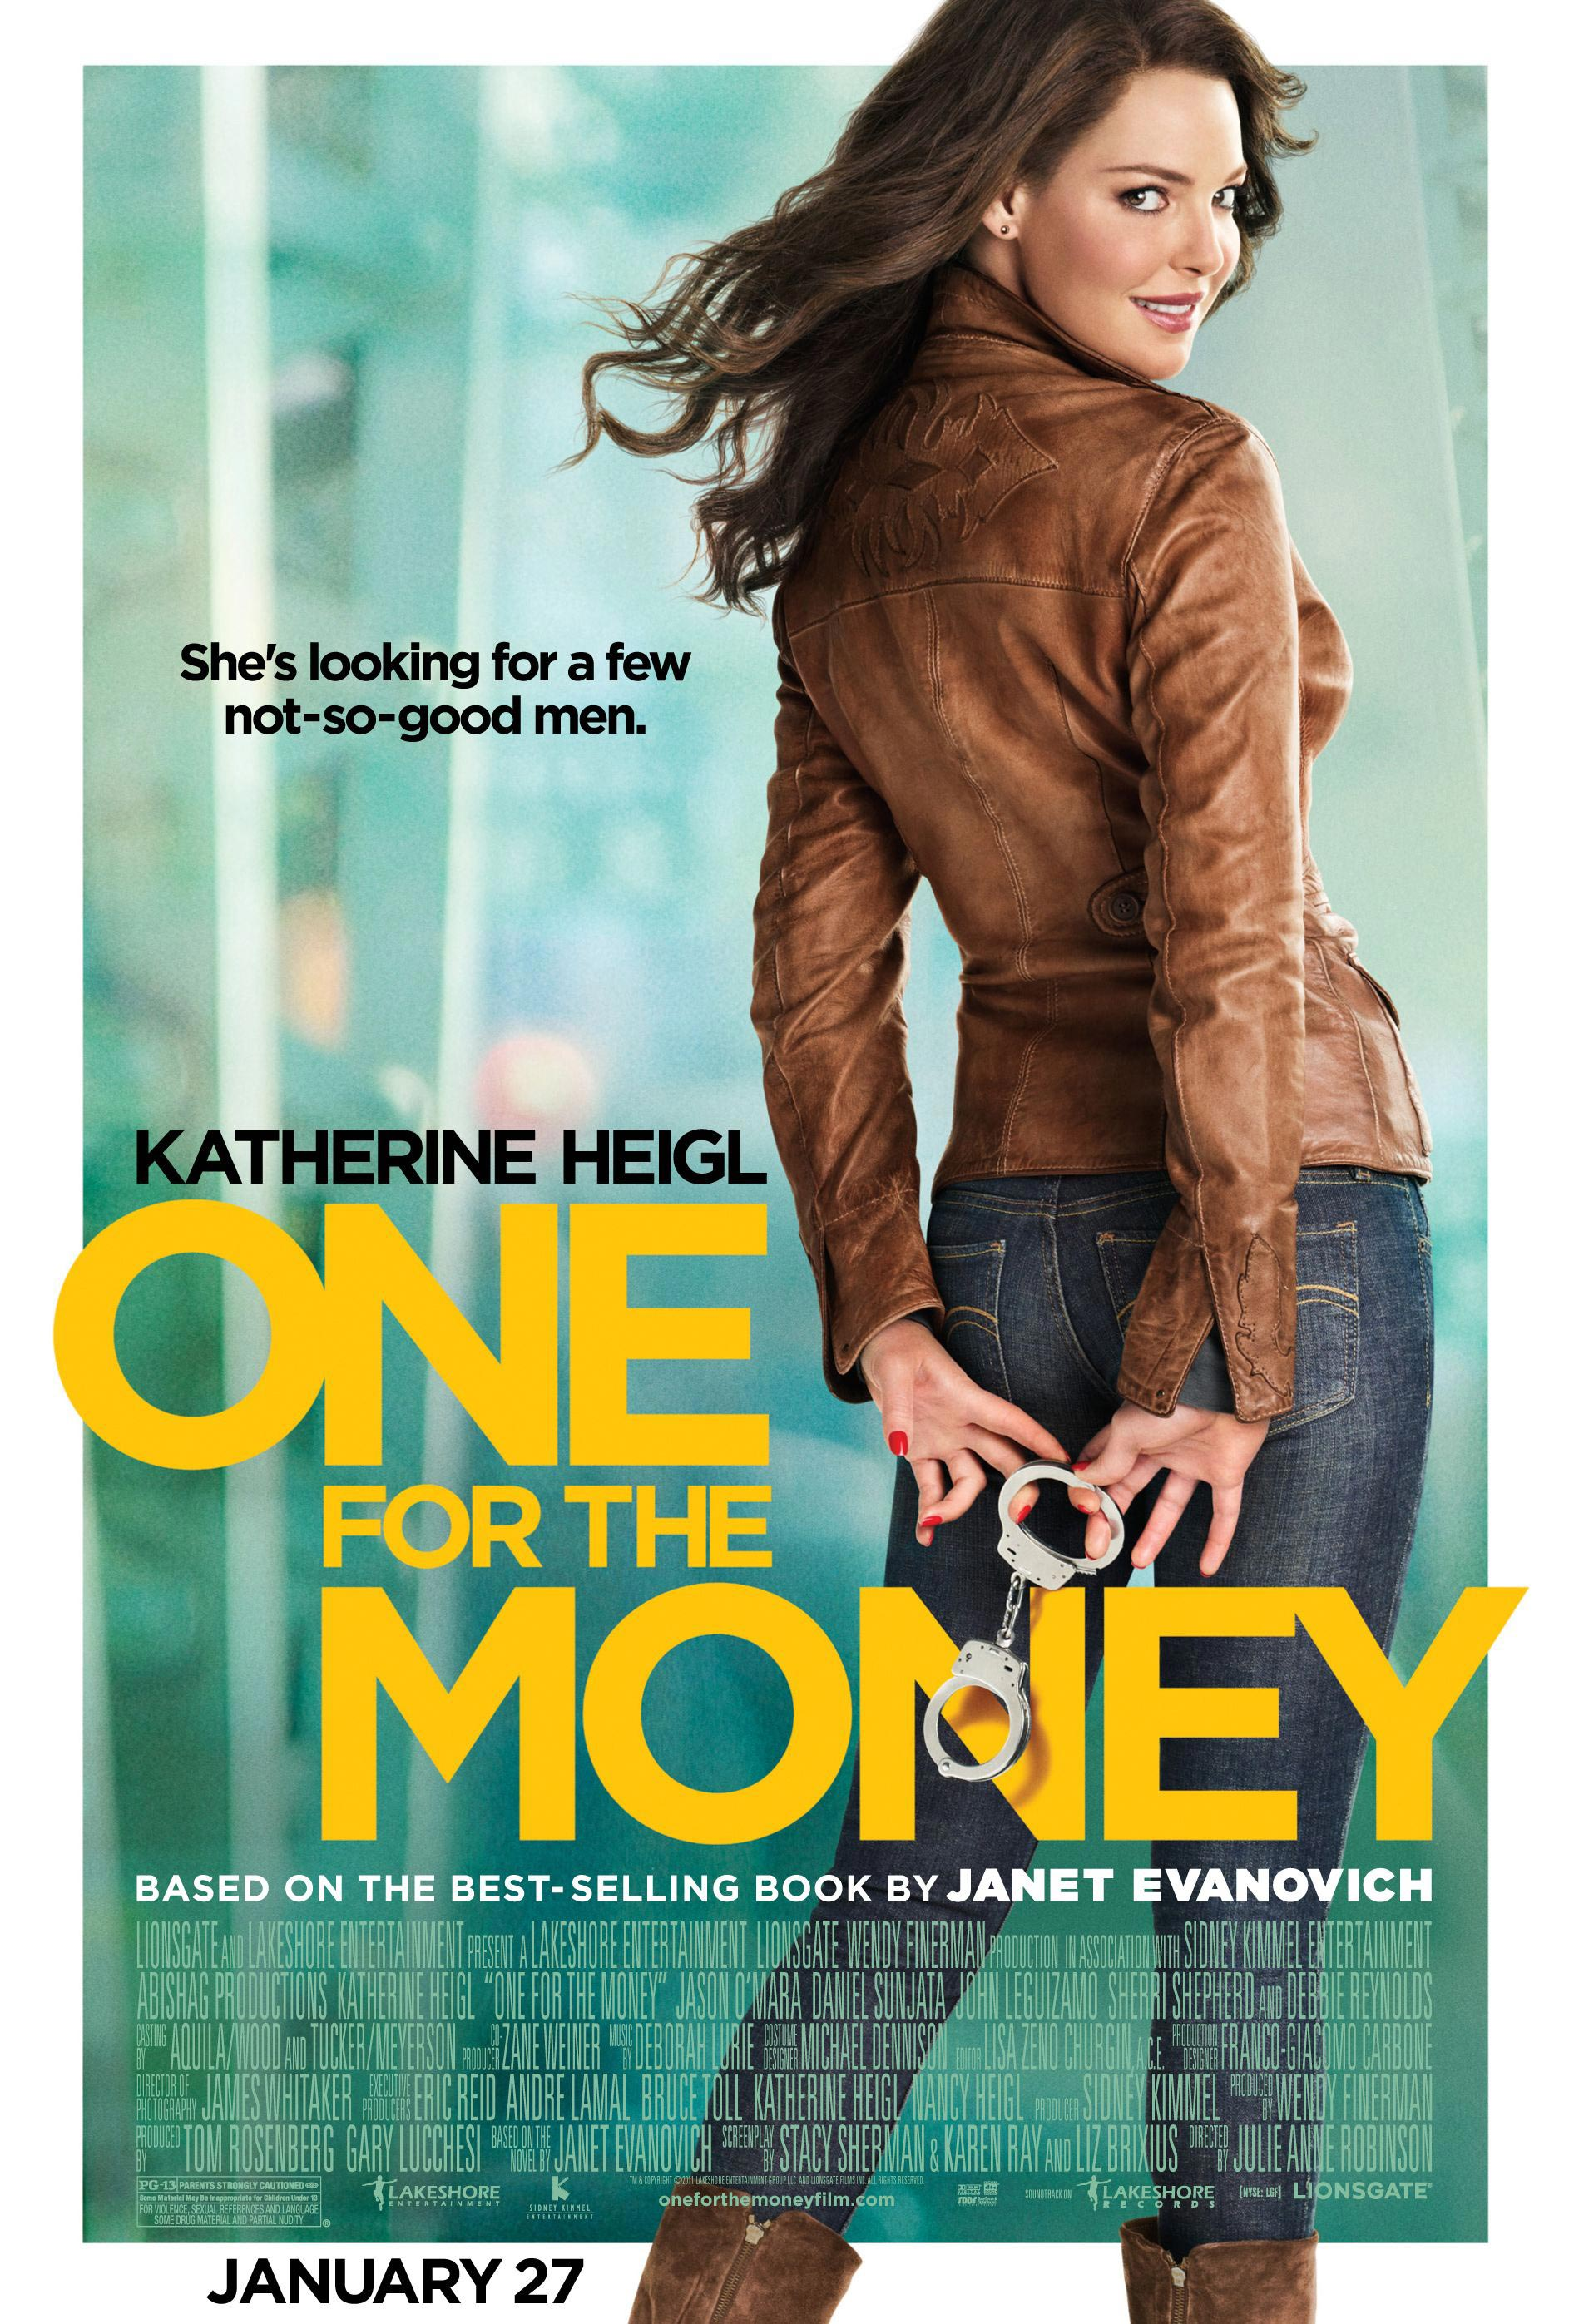 One for the money posters